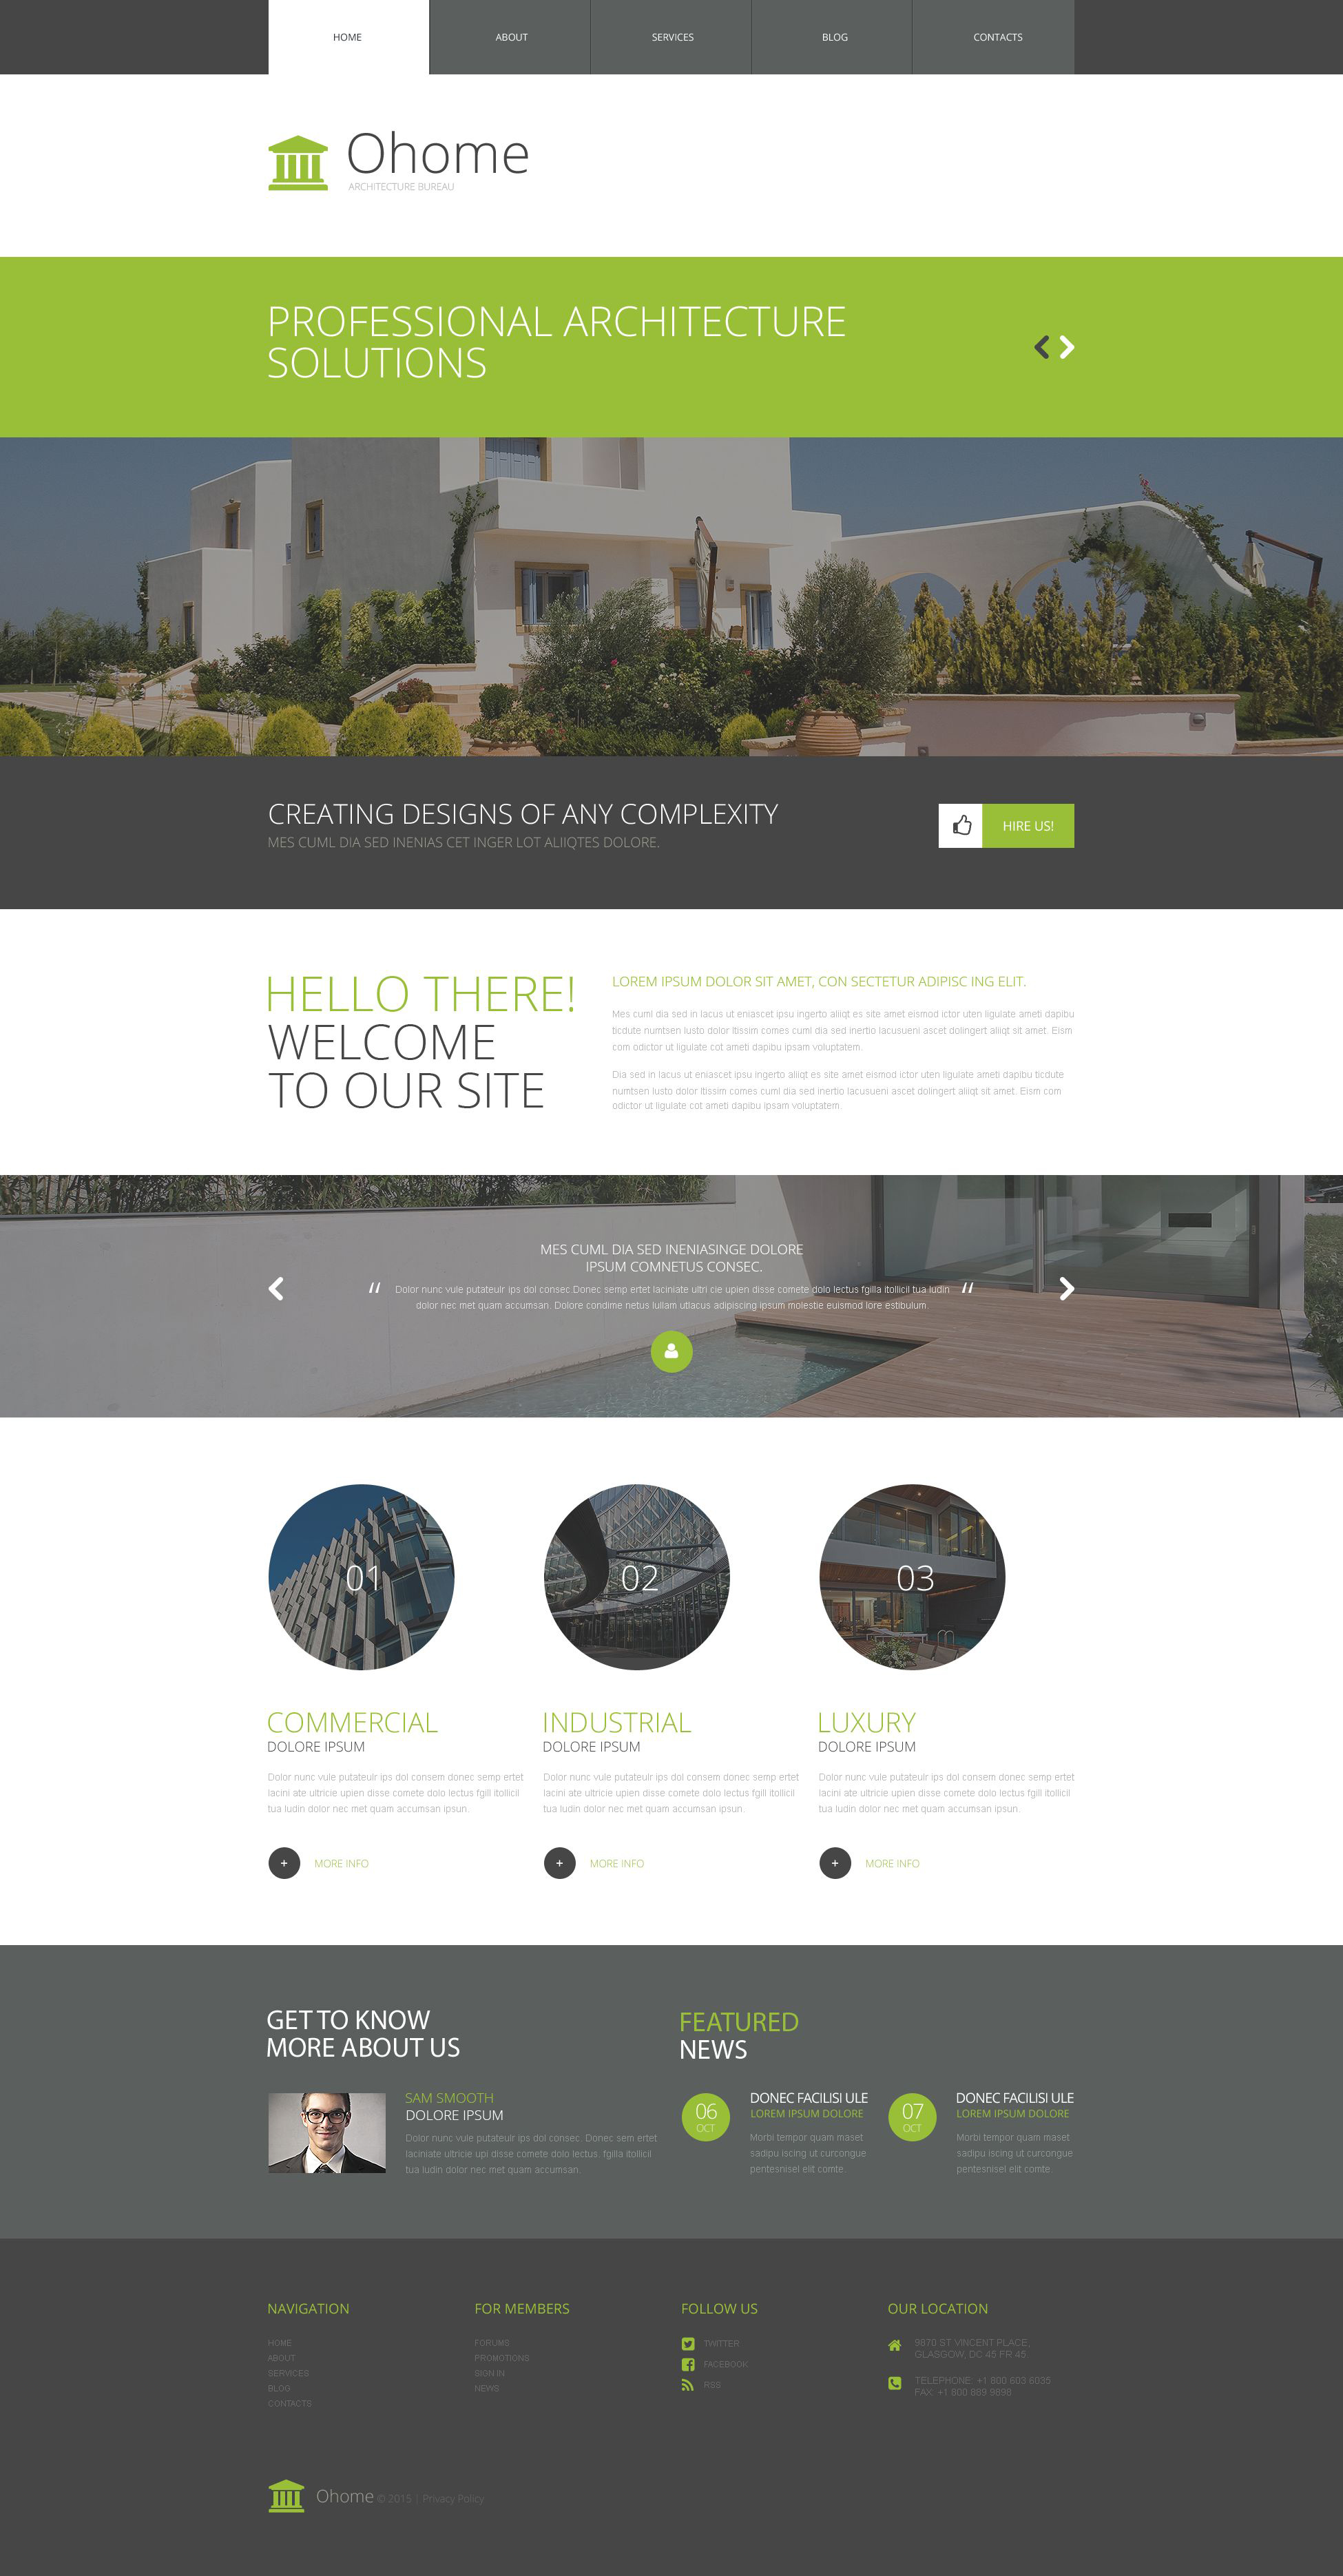 The Ohome Architecture Company WordPress Design 53381, one of the best WordPress themes of its kind (art & photography, most popular), also known as Ohome architecture company WordPress template, architectural company bureau WordPress template, buildings WordPress template, technology WordPress template, innovation WordPress template, skyscrapers WordPress template, projects WordPress template, constructions WordPress template, houses WordPress template, work WordPress template, team WordPress template, strategy WordPress template, services WordPress template, support WordPress template, planning WordPress template, custom design WordPress template, enterprise WordPress template, clients WordPress template, partners WordPress template, esteem and related with Ohome architecture company, architectural company bureau, buildings, technology, innovation, skyscrapers, projects, constructions, houses, work, team, strategy, services, support, planning, custom design, enterprise, clients, partners, esteem, etc.